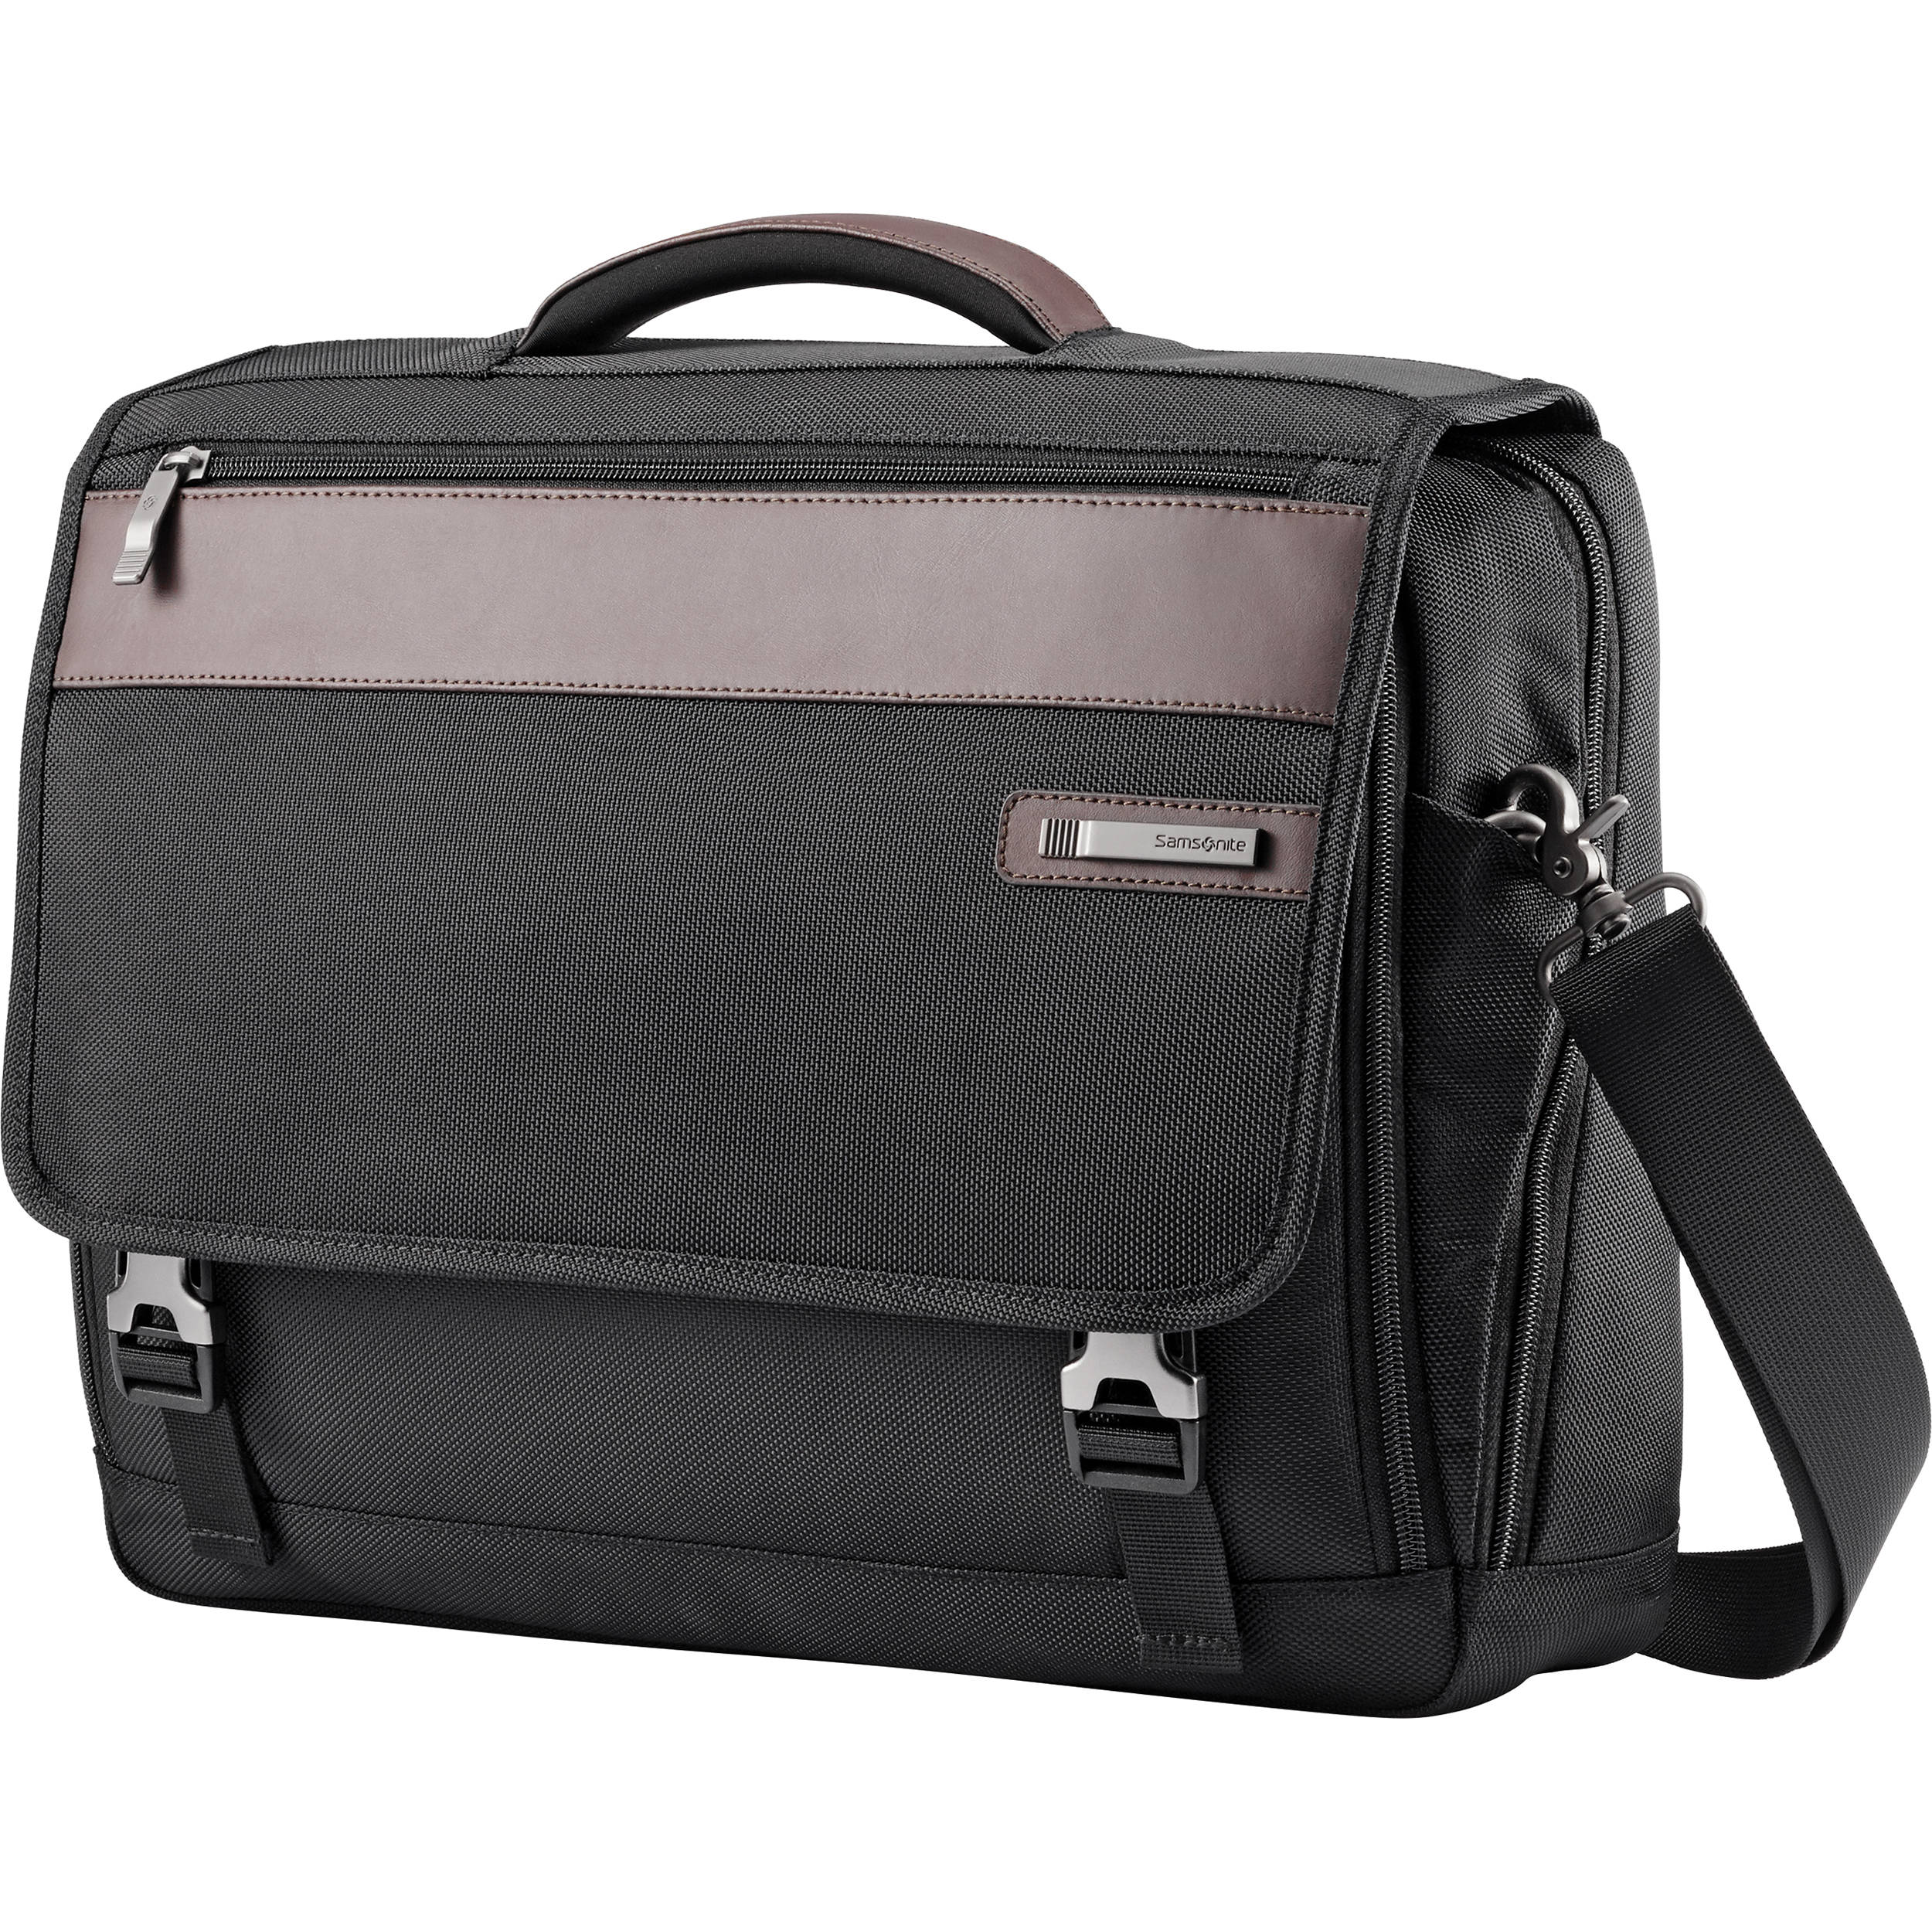 30175ed498 Samsonite Kombi Flapover Briefcase (Black/Brown) 92314-1051 B&H